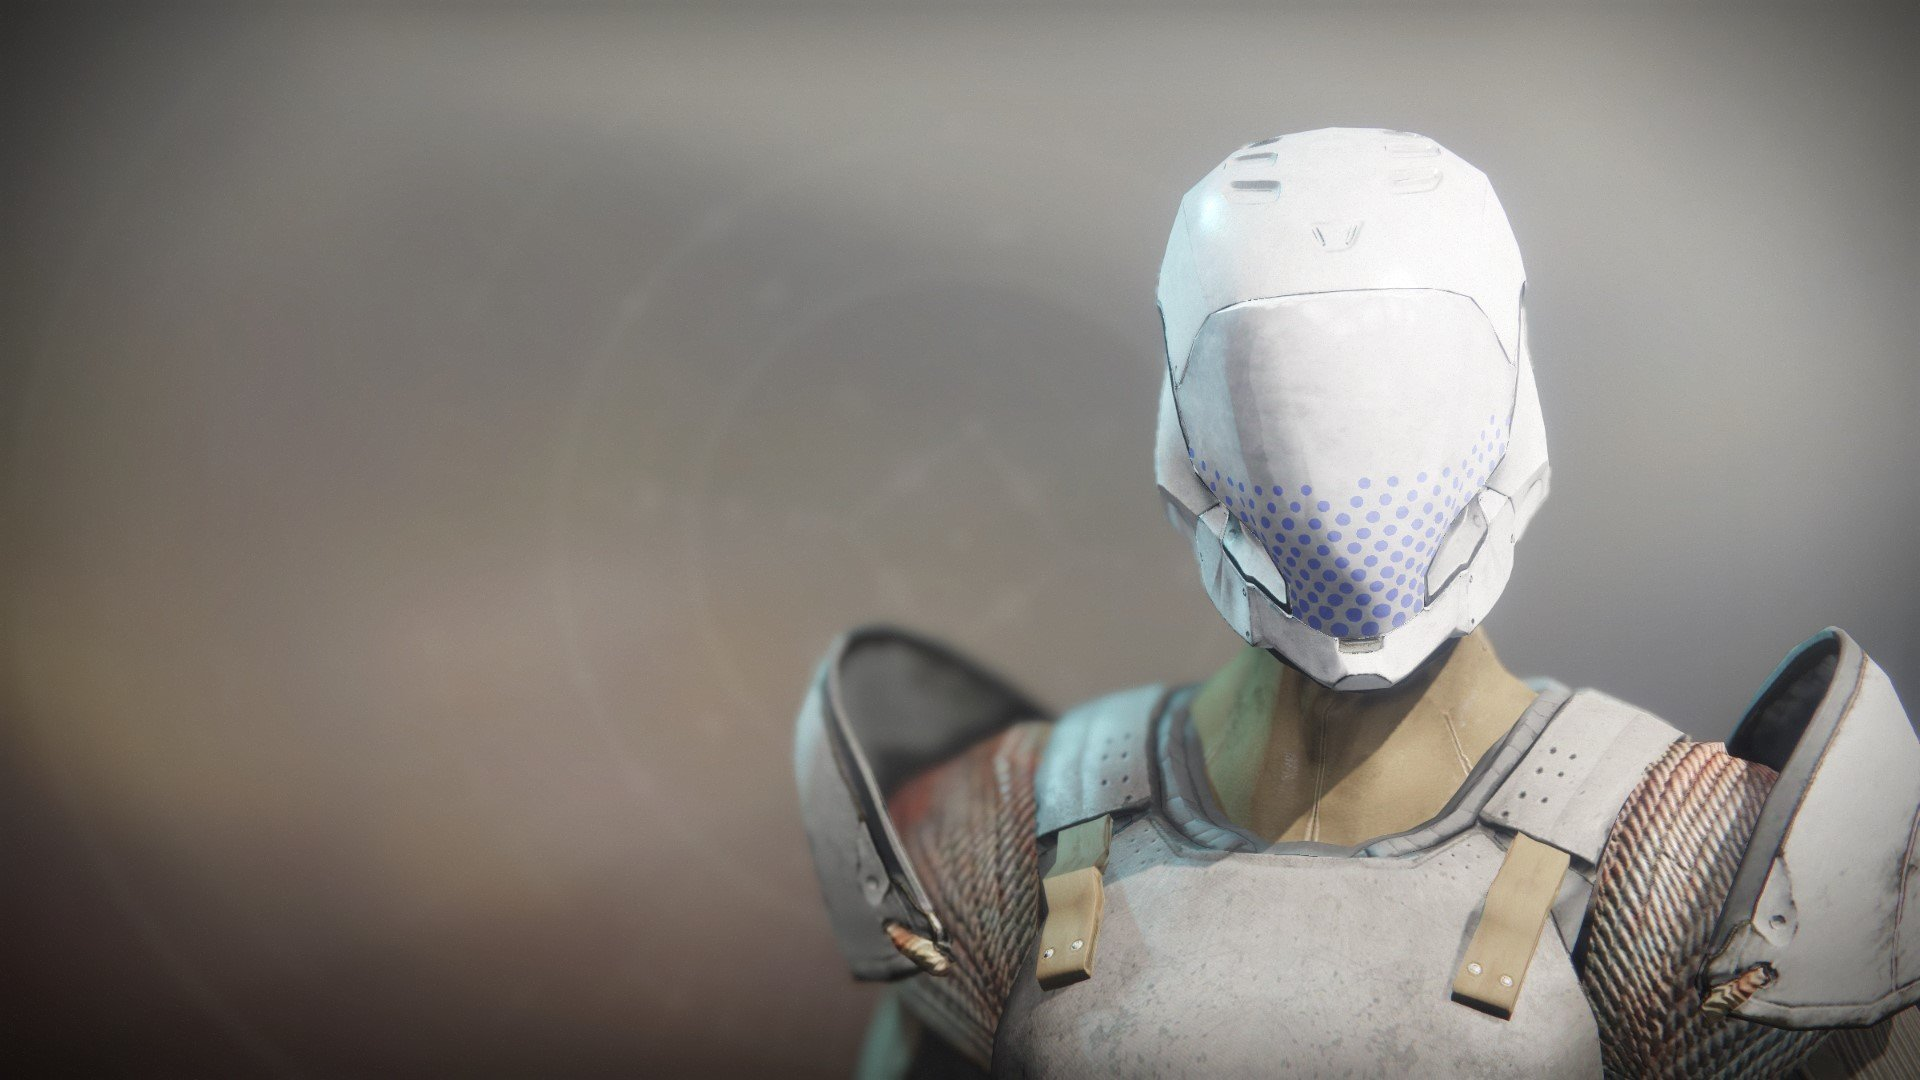 An in-game render of the War Simulator Ornament.